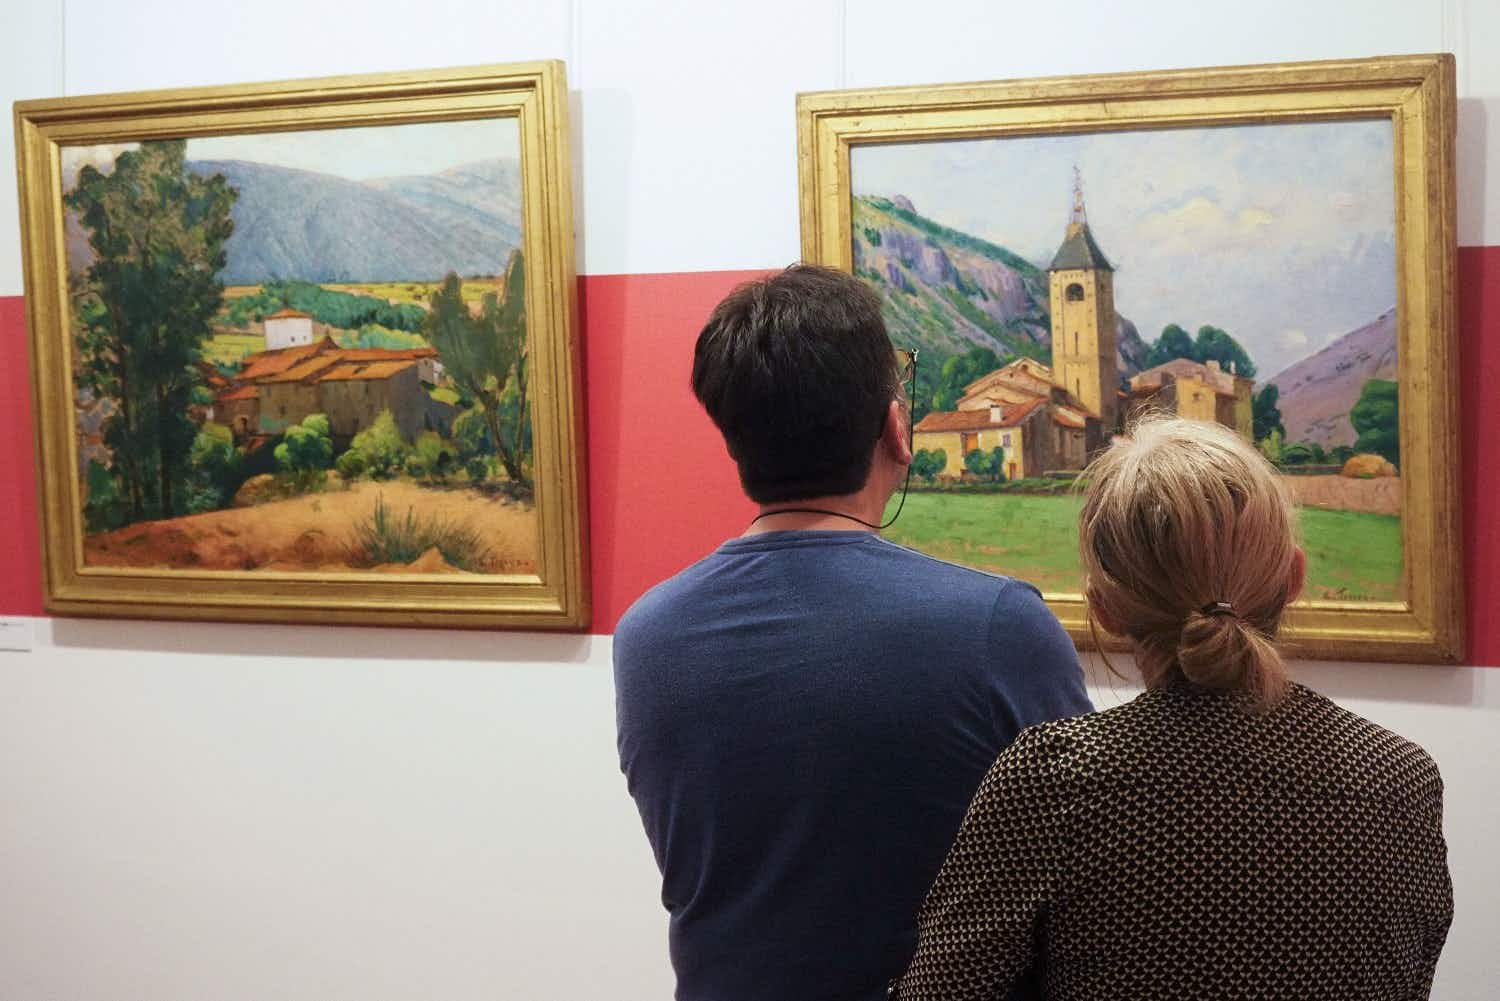 This French museum discovered most of its paintings are fake